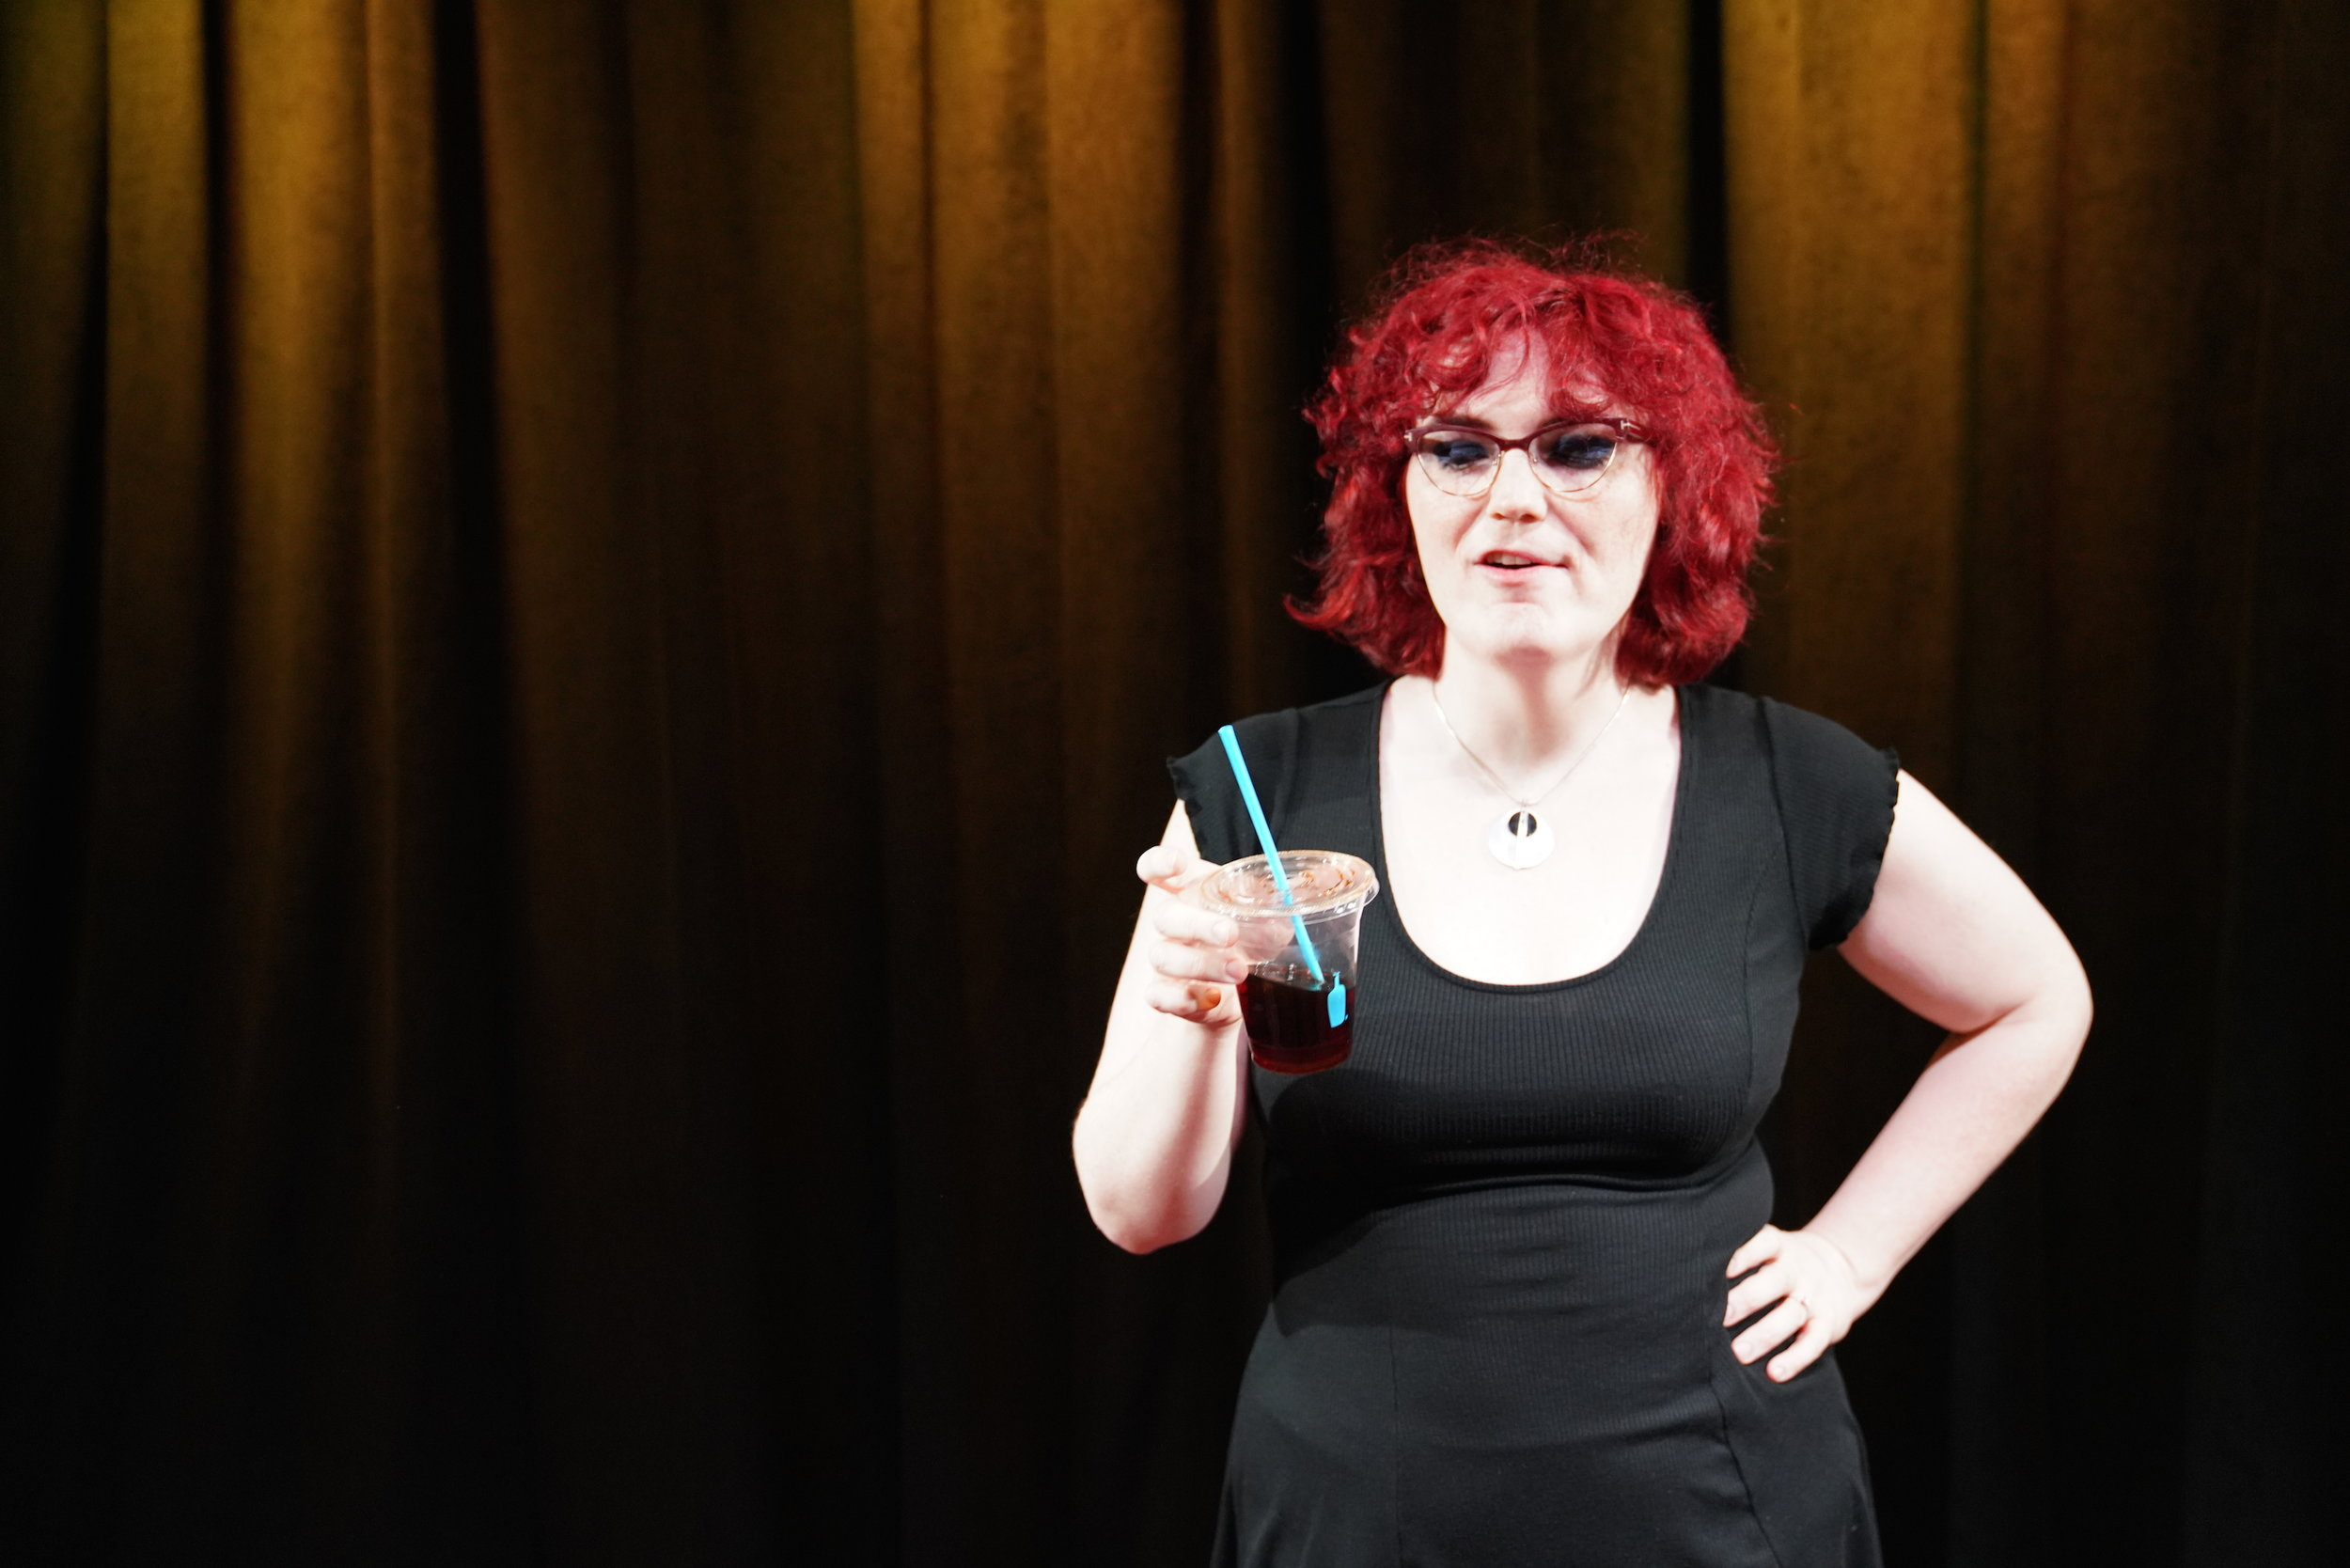 Chloe Koser - Chloe is a UCBT performer who spent three wonderful years as an actress on Maude Night. She acts, improvises, writes, and does stand-up and characters. Her one-woman show, 'Never a Boy,' is currently running at UCBT Hell's Kitchen.